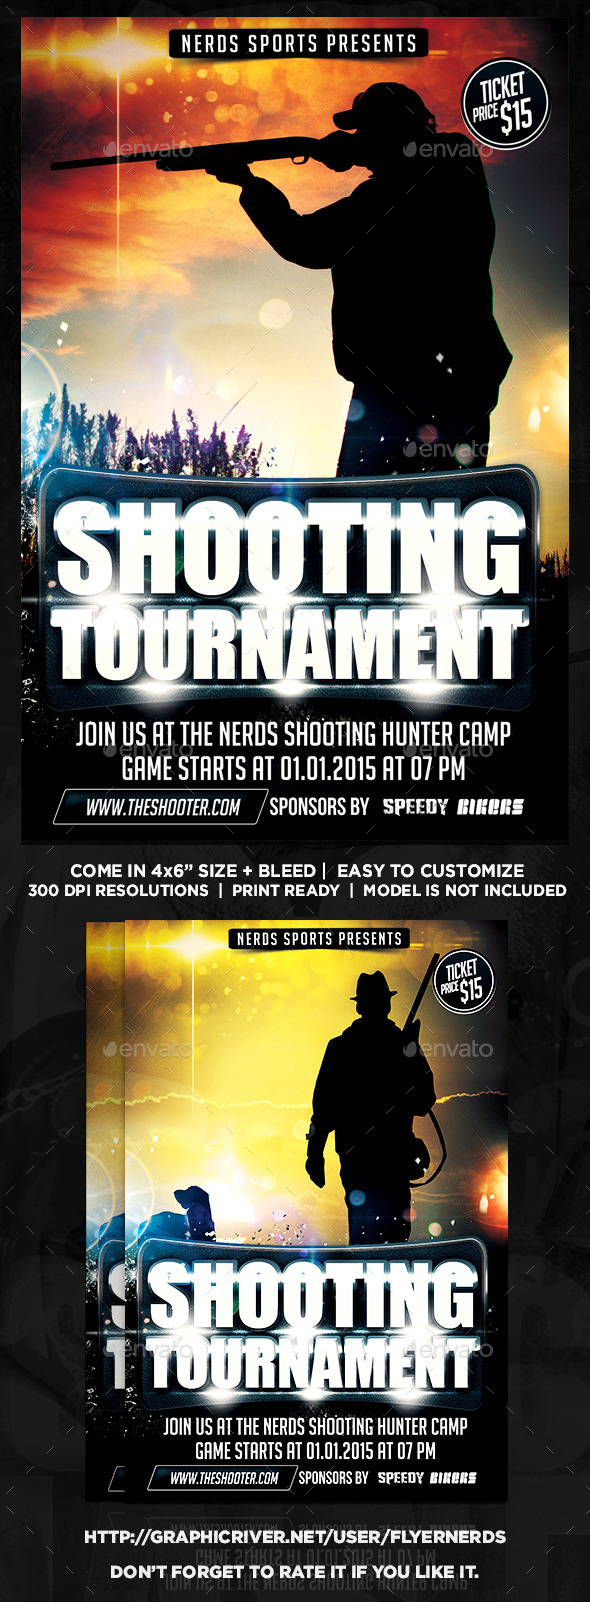 Hunting Tournament Sports Flyer